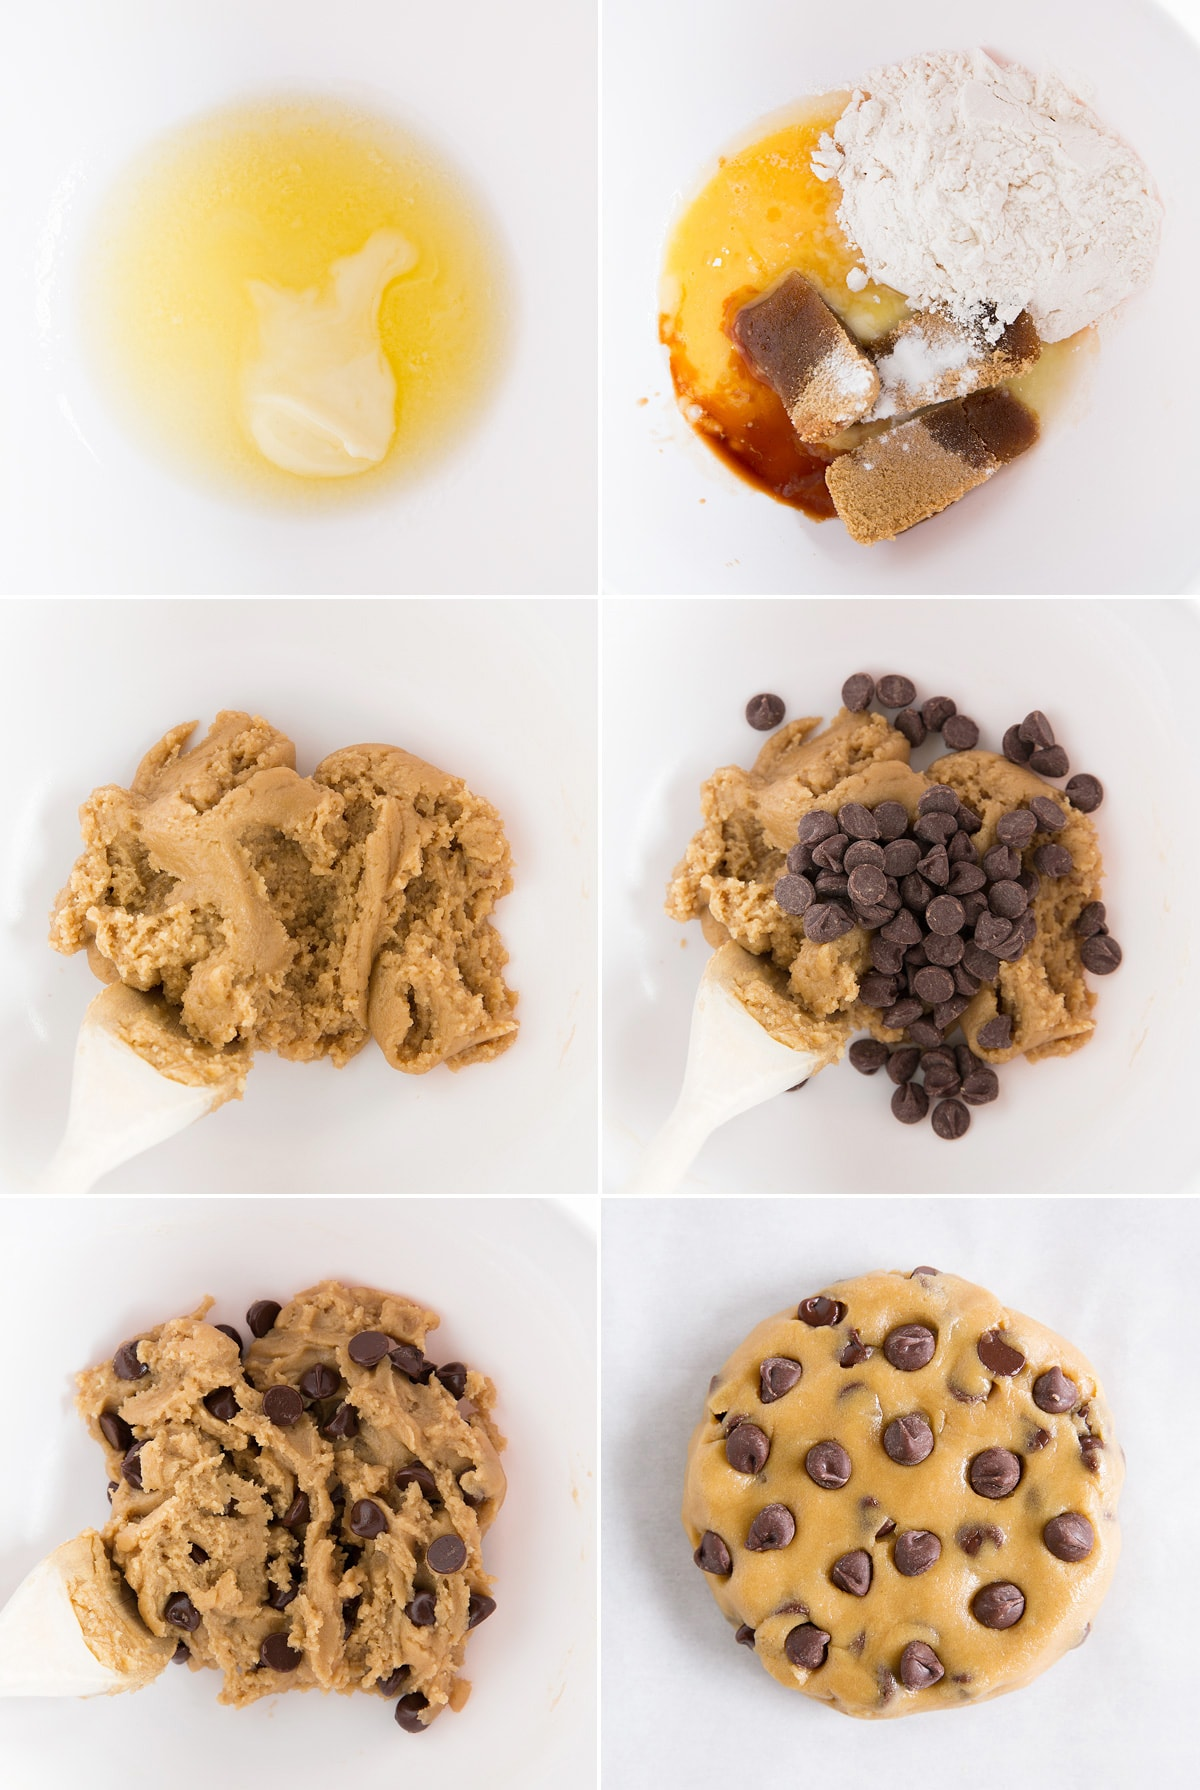 Steps to making a single chocolate chip cookie. Shown preparing dough in a mixing bowl and shaping dough into a round on parchment paper.